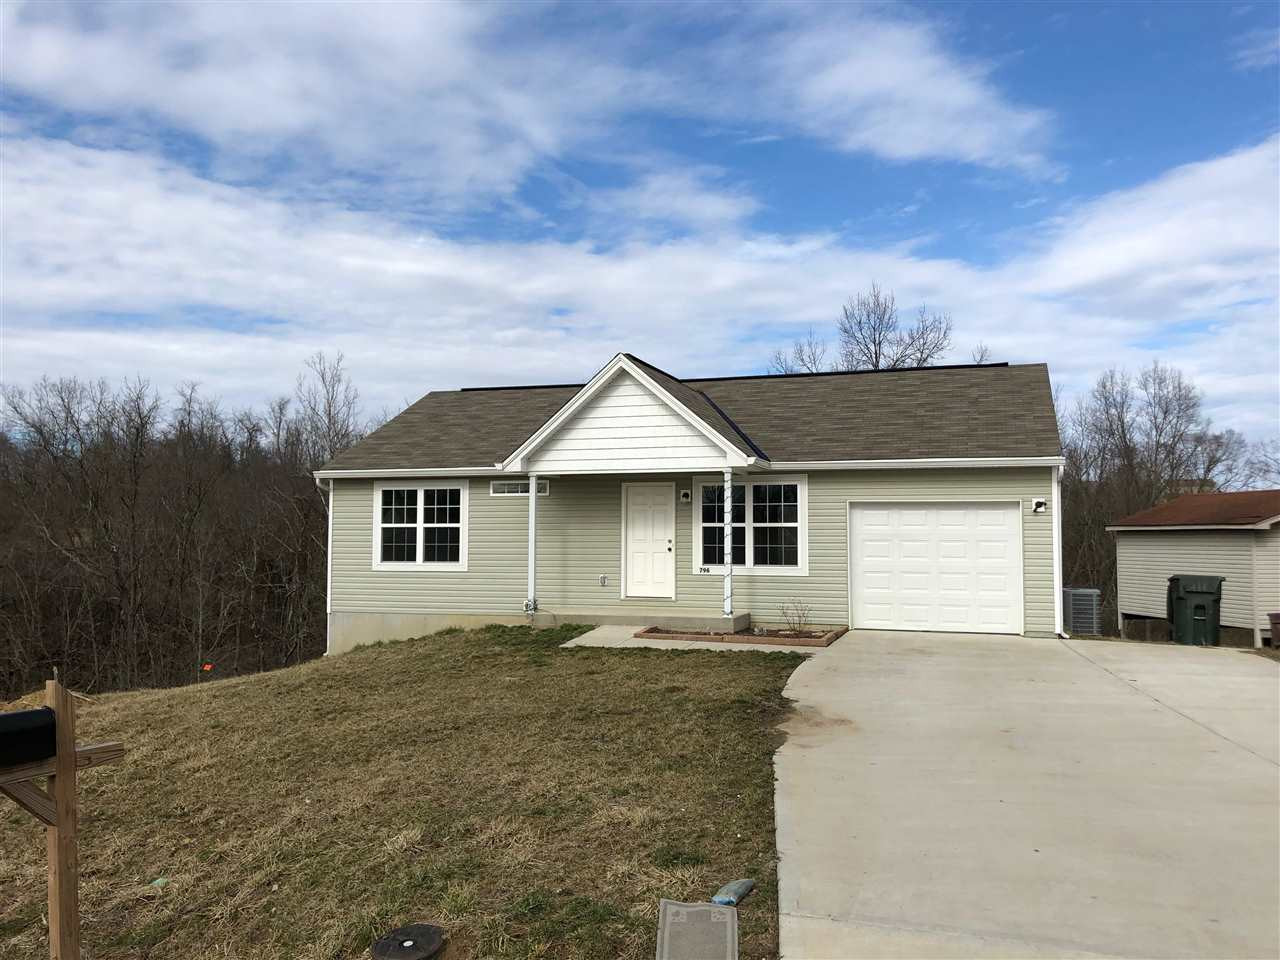 Photo 1 for 796 Jimae Ave Independence, KY 41051